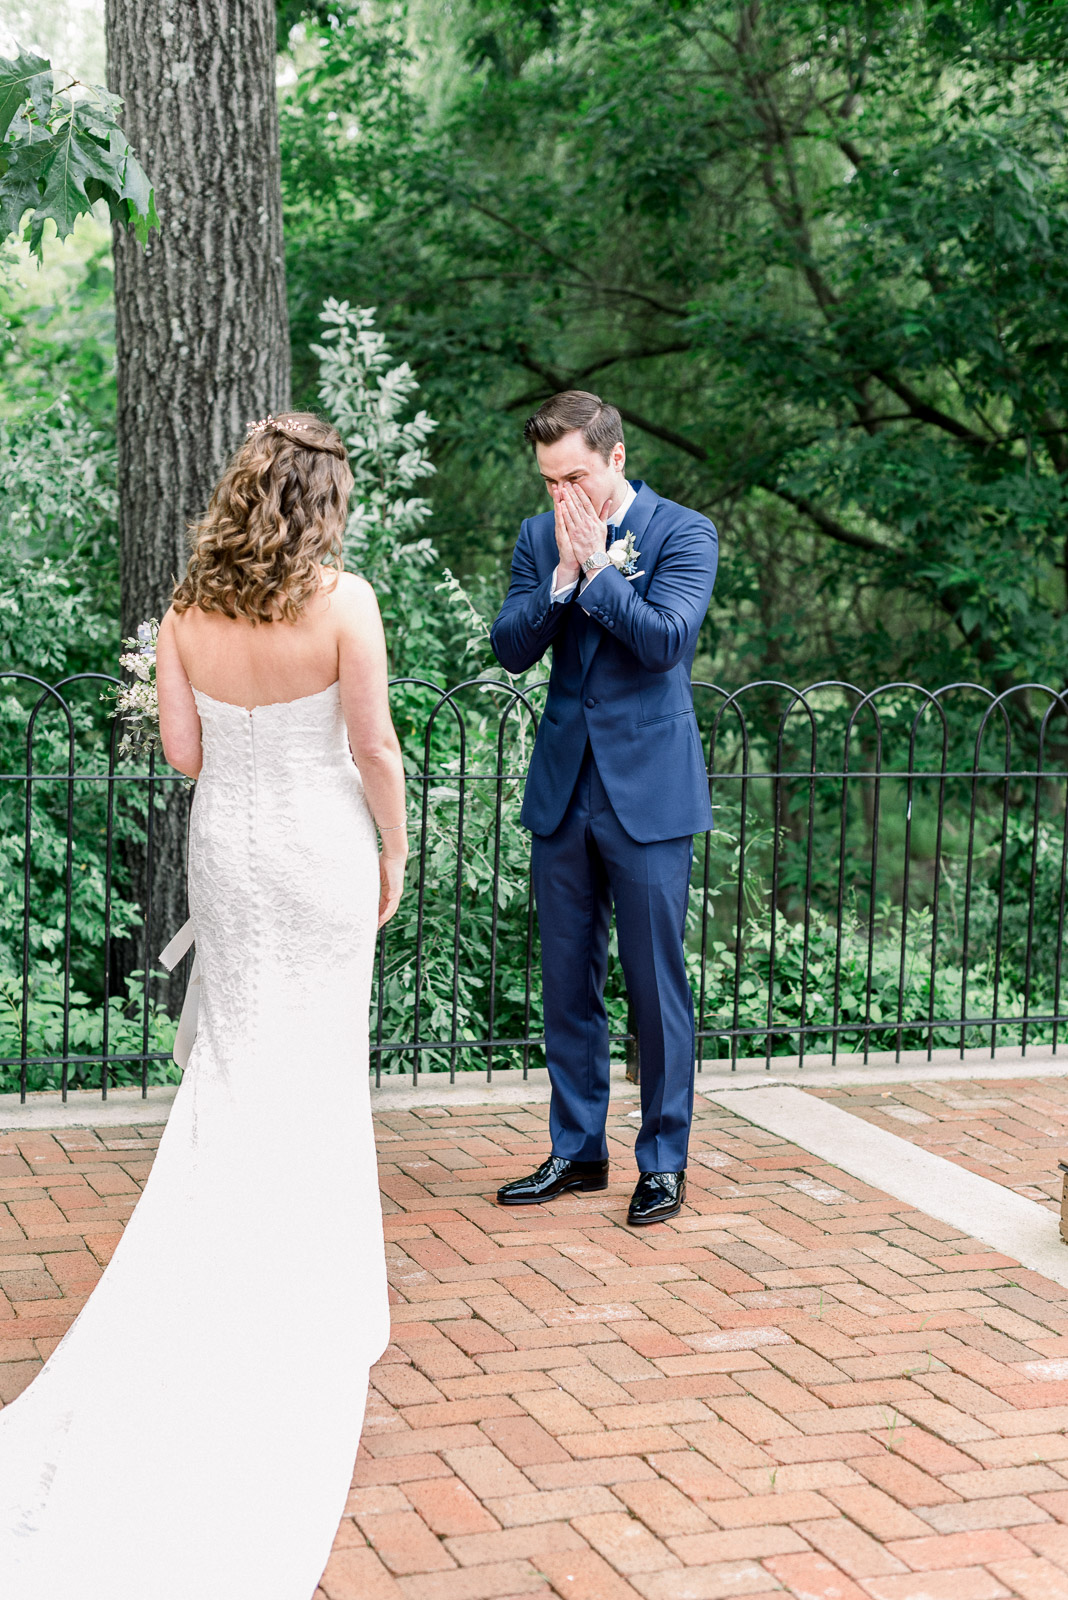 First look at Hotel du Village wedding in New Hope PA